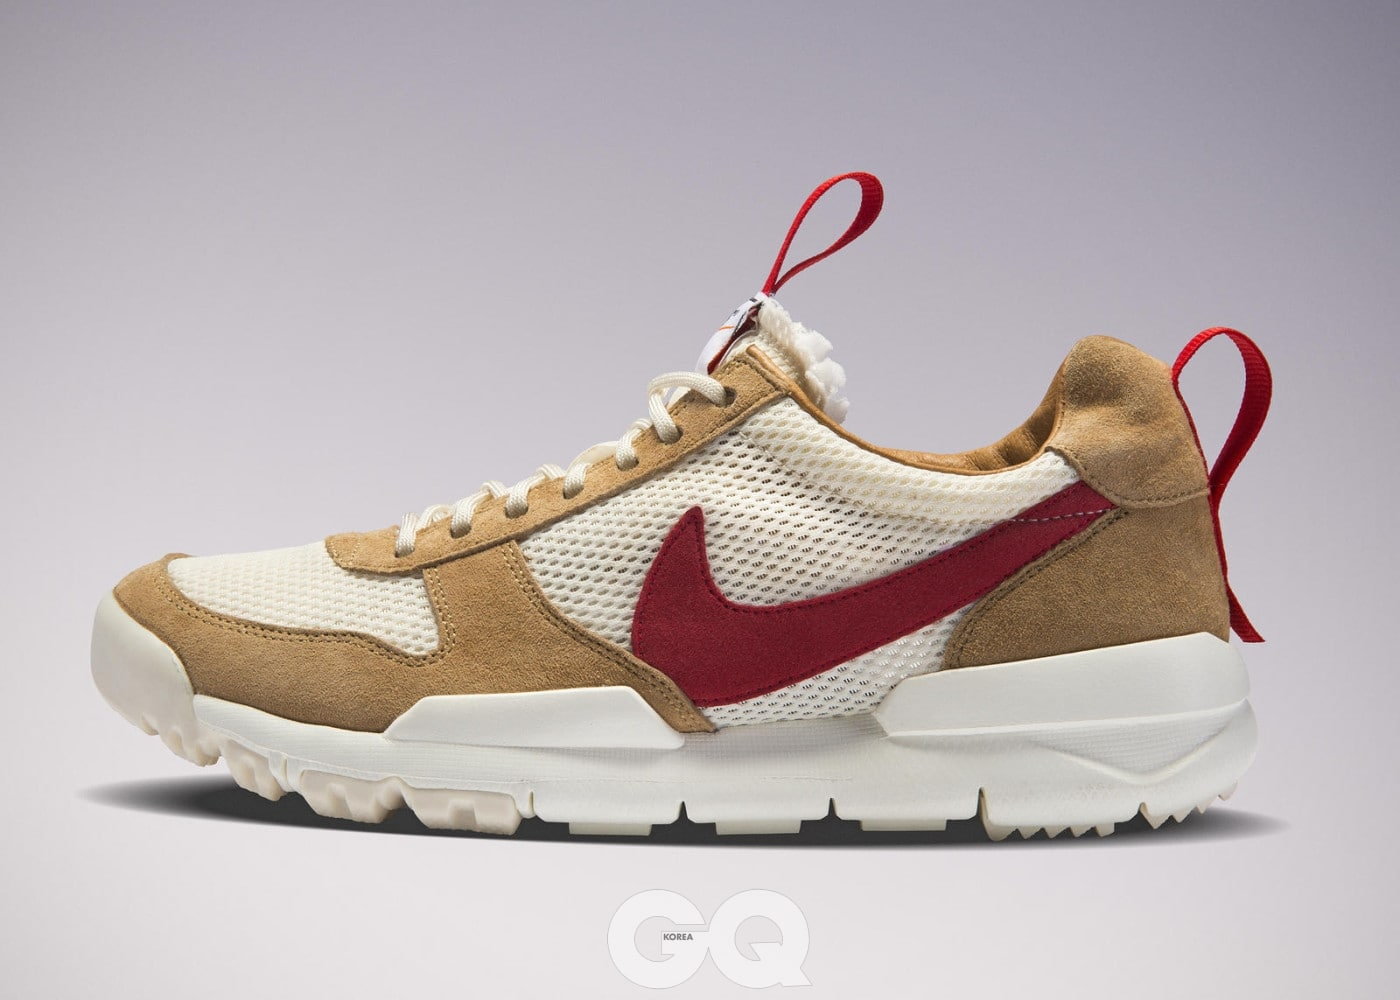 NikeLab-Tom-Sachs-Mars-Yard-2-1_rectangle_1600